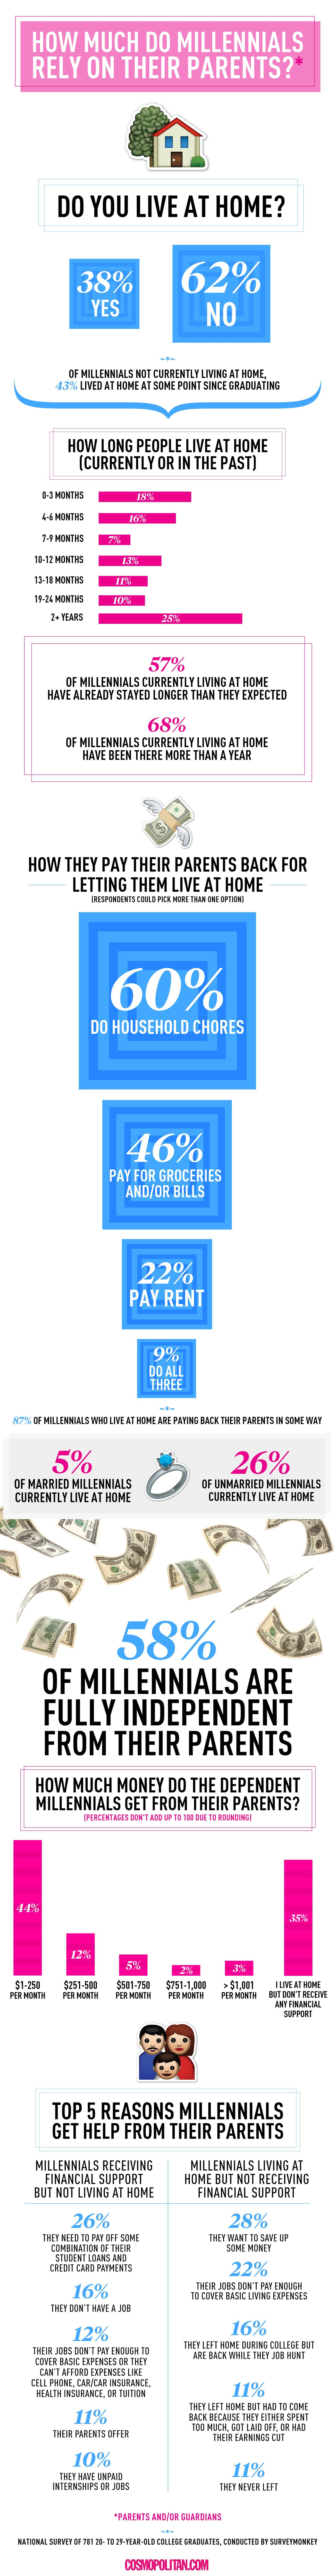 How Much Do Millennials Rely On Their Parents In